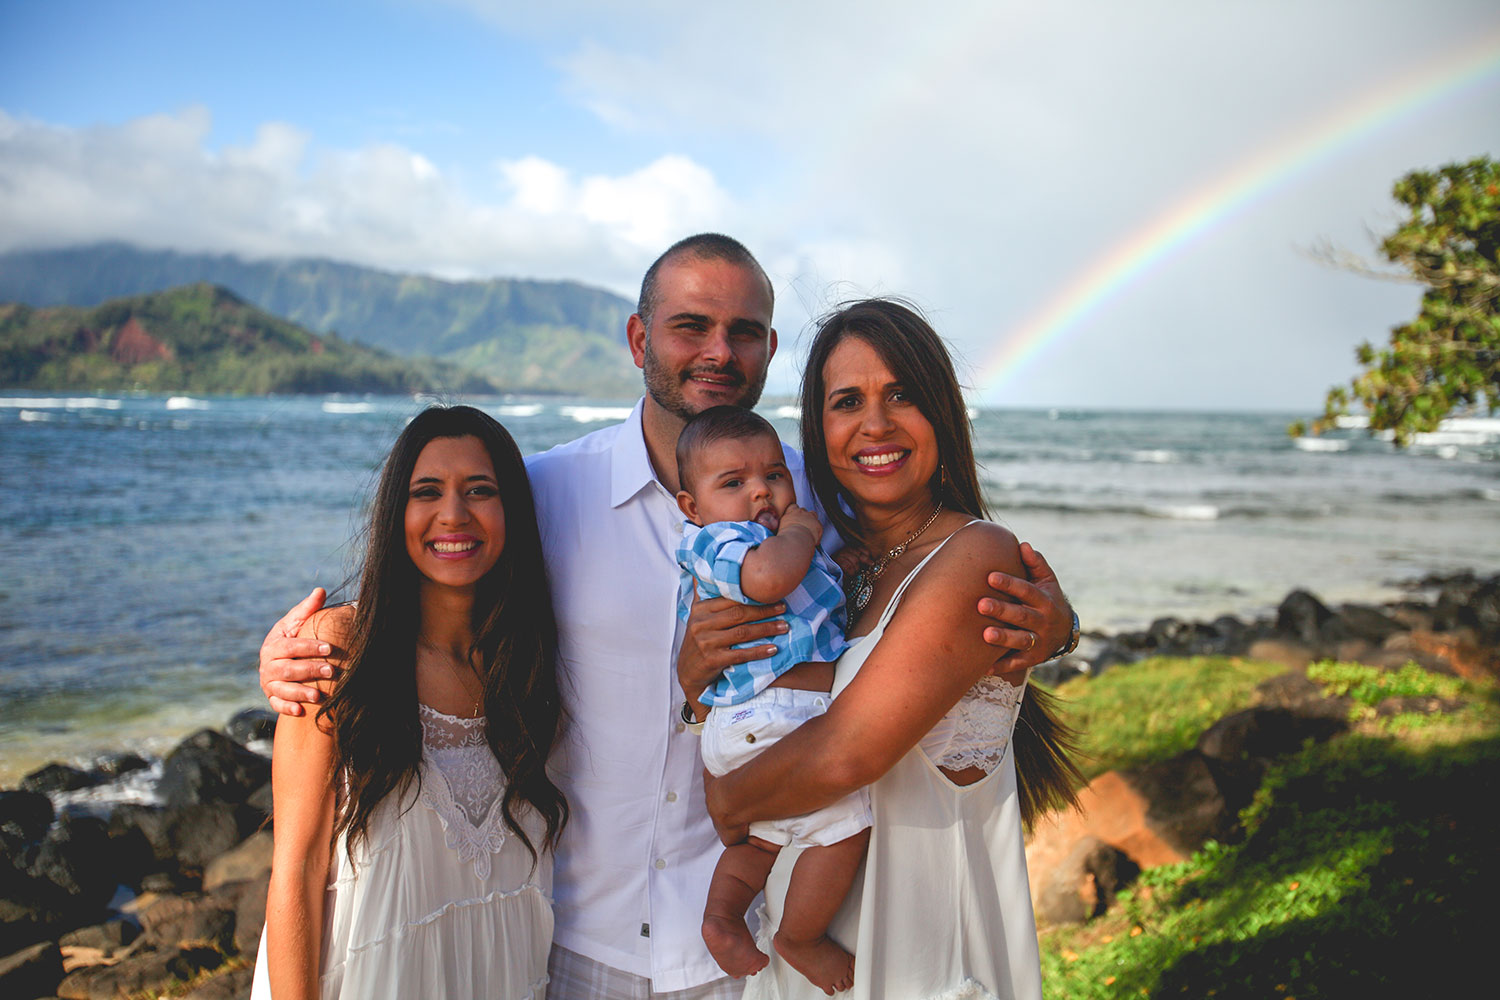 family-photo-shoot-kauai-alvrenga.jpg